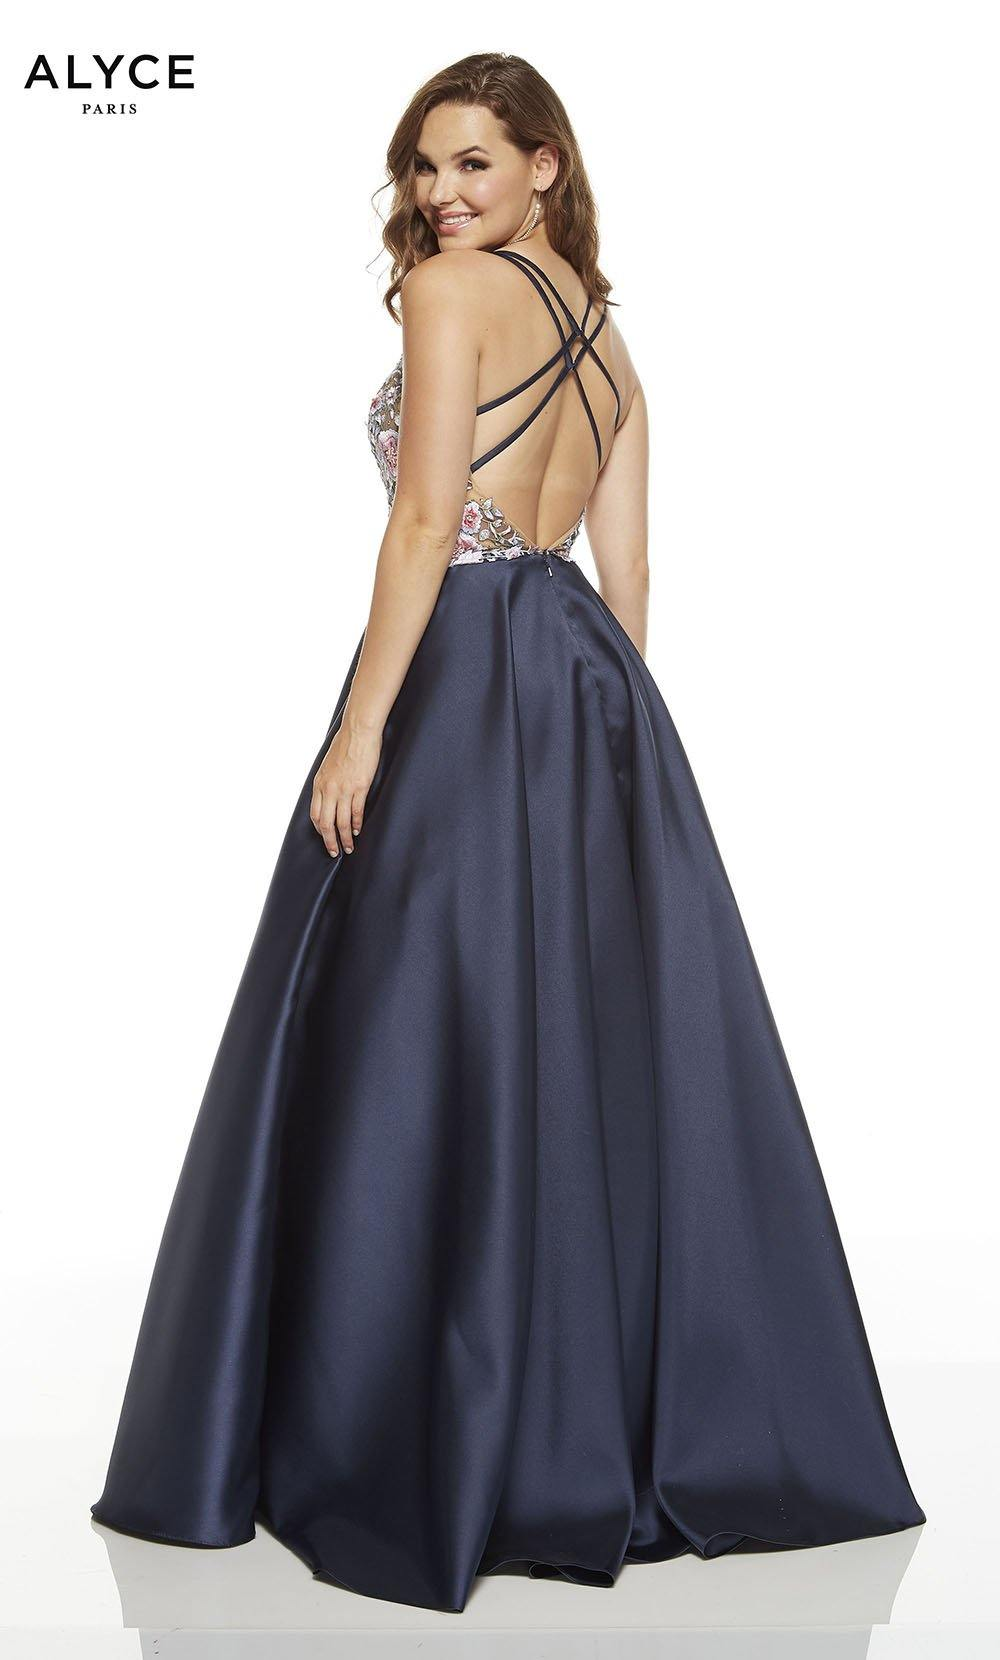 Midnight Blue ball gown with a strappy back